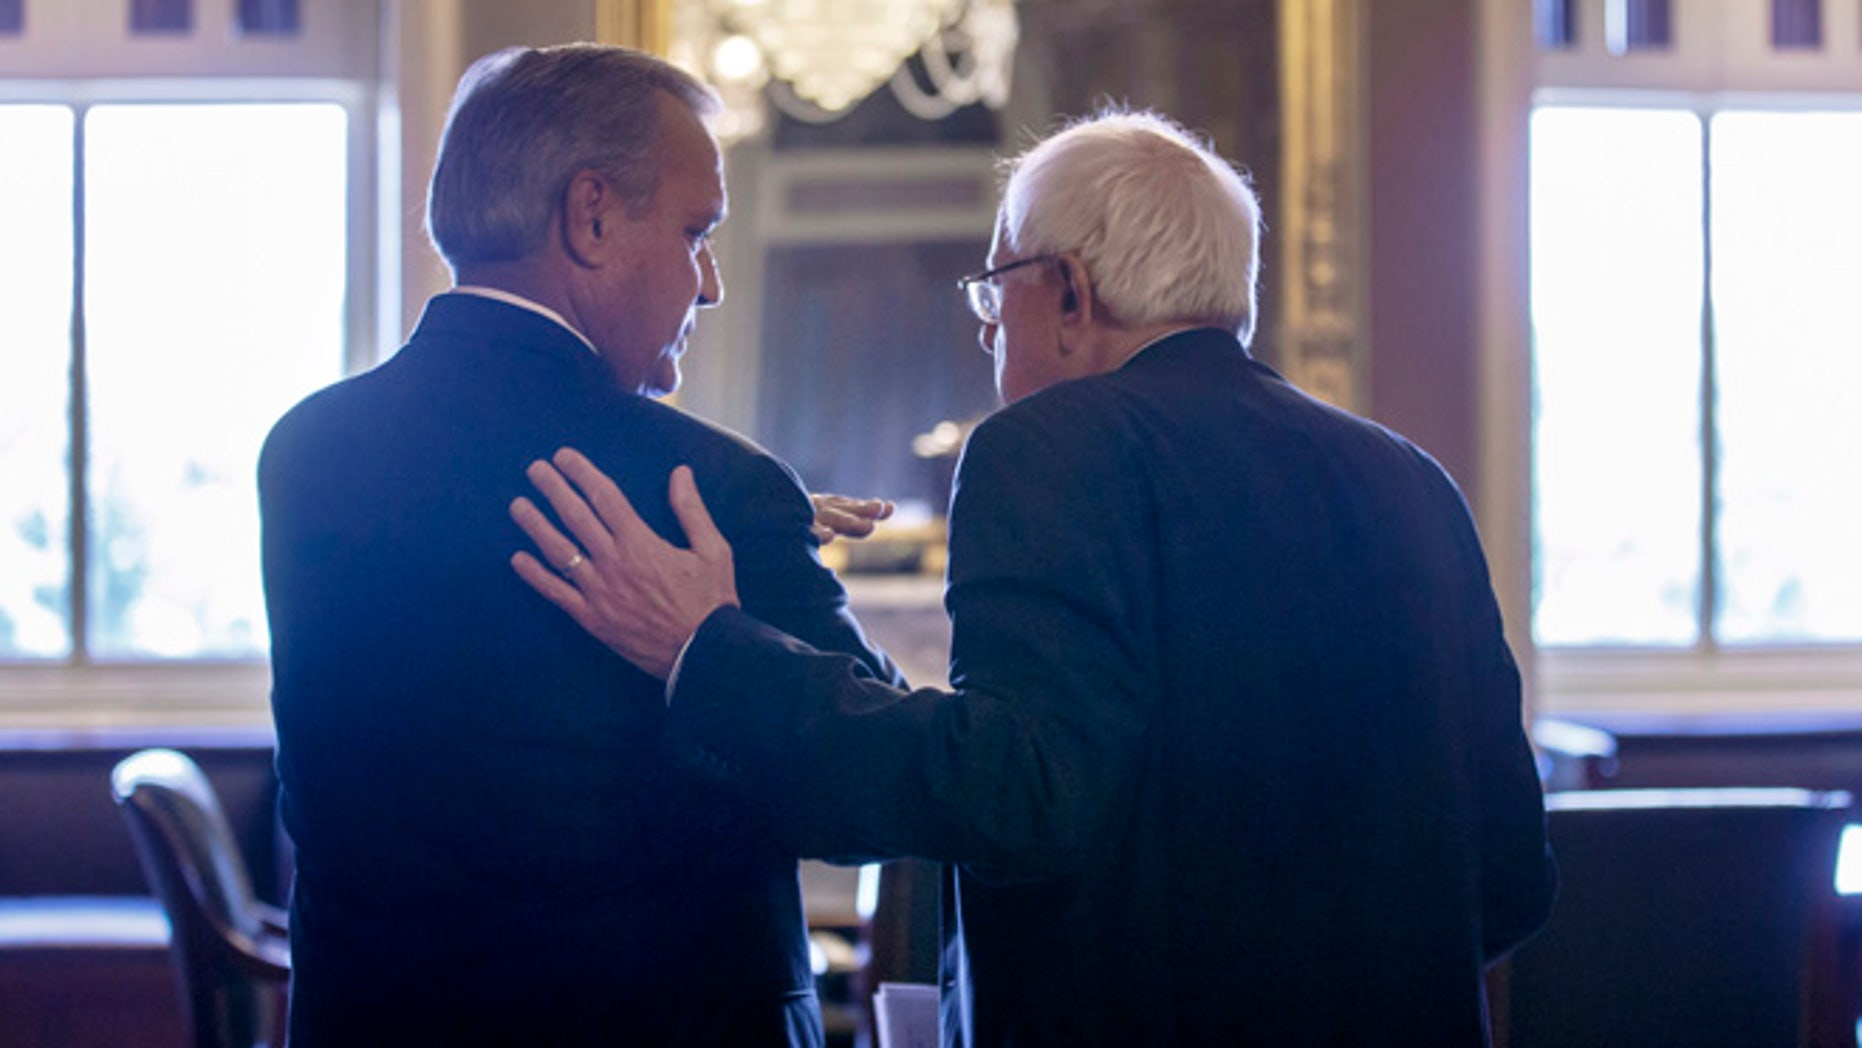 July 28, 2014: Senate Veterans Affairs Committee Chairman Sen. Bernie Sanders, I-Vt., right, and House Veterans Affairs Committee Chairman Rep. Jeff Miller, R-Fla., confer in Senate Reception before a news conference on Capitol Hill in Washington.